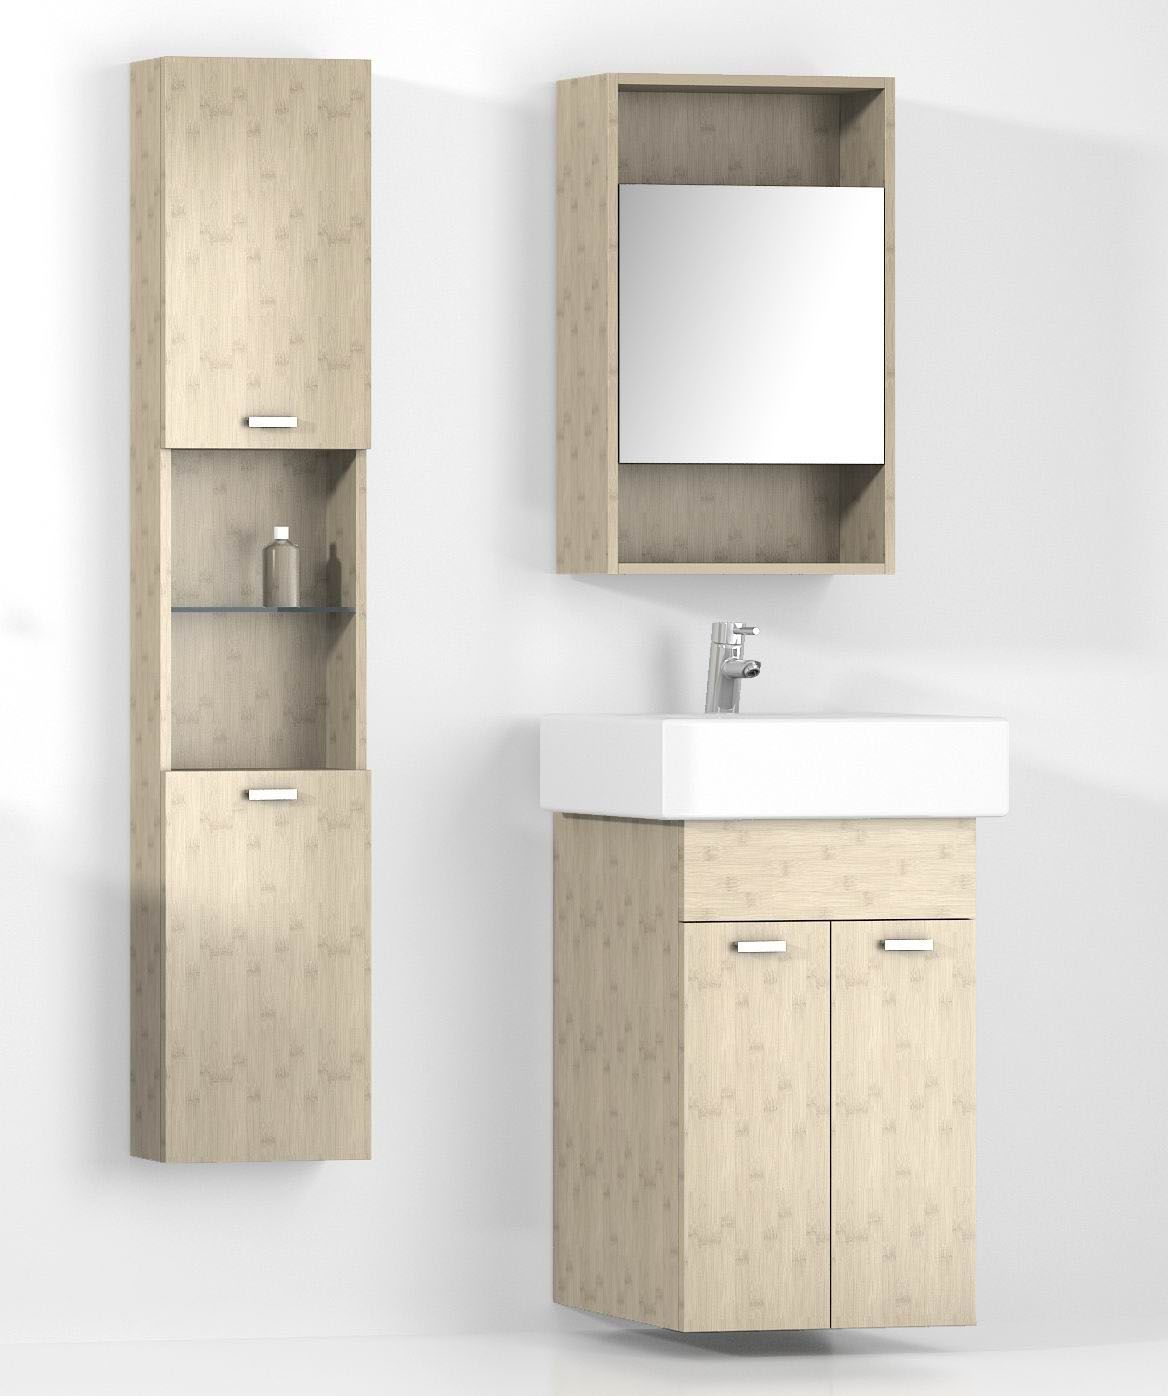 Floating Bathroom Storage Cabinets | http://divulgamaisweb.com ...